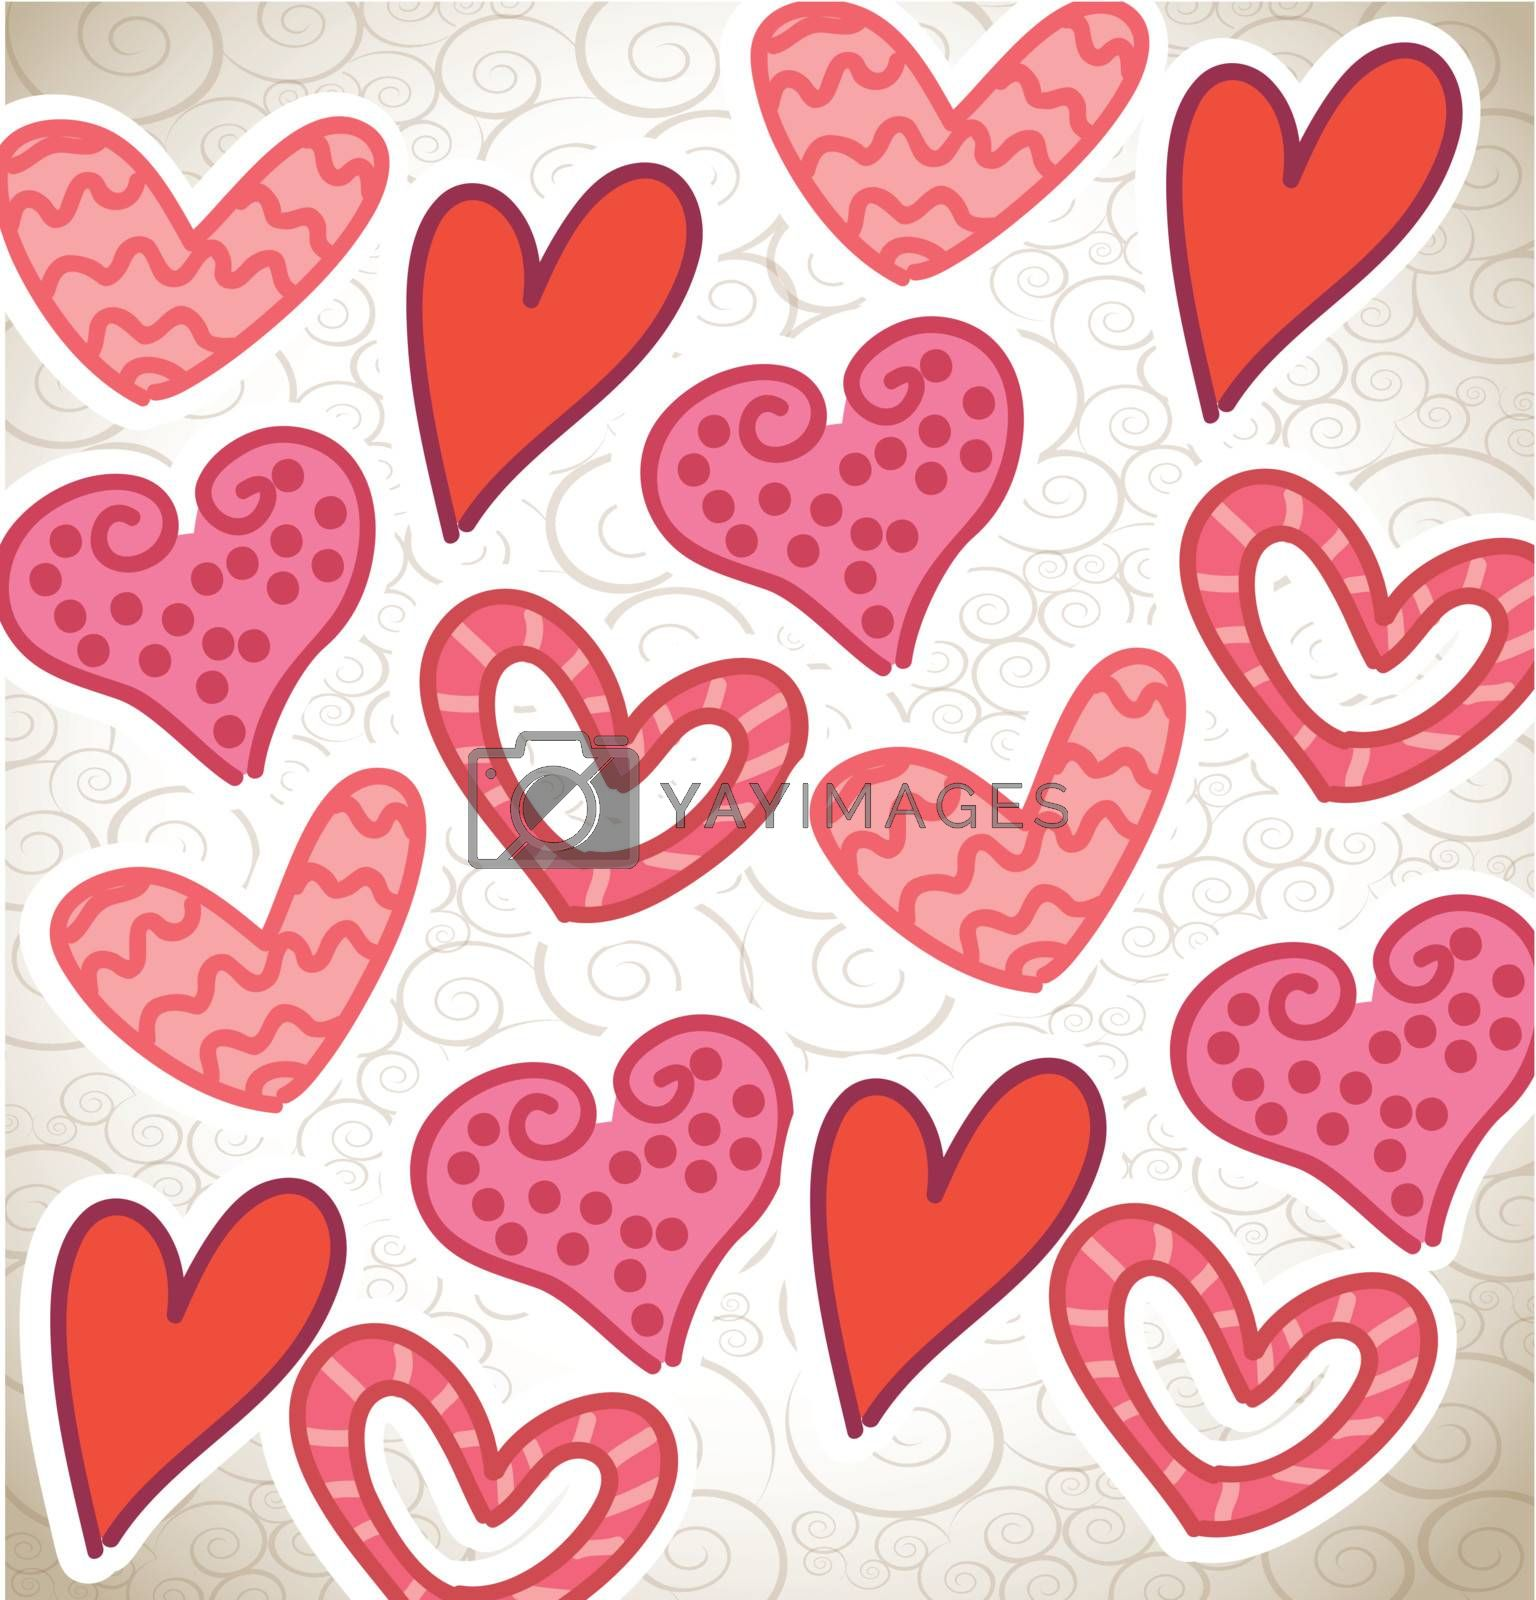 Love background with pink and red hearts vector illustration